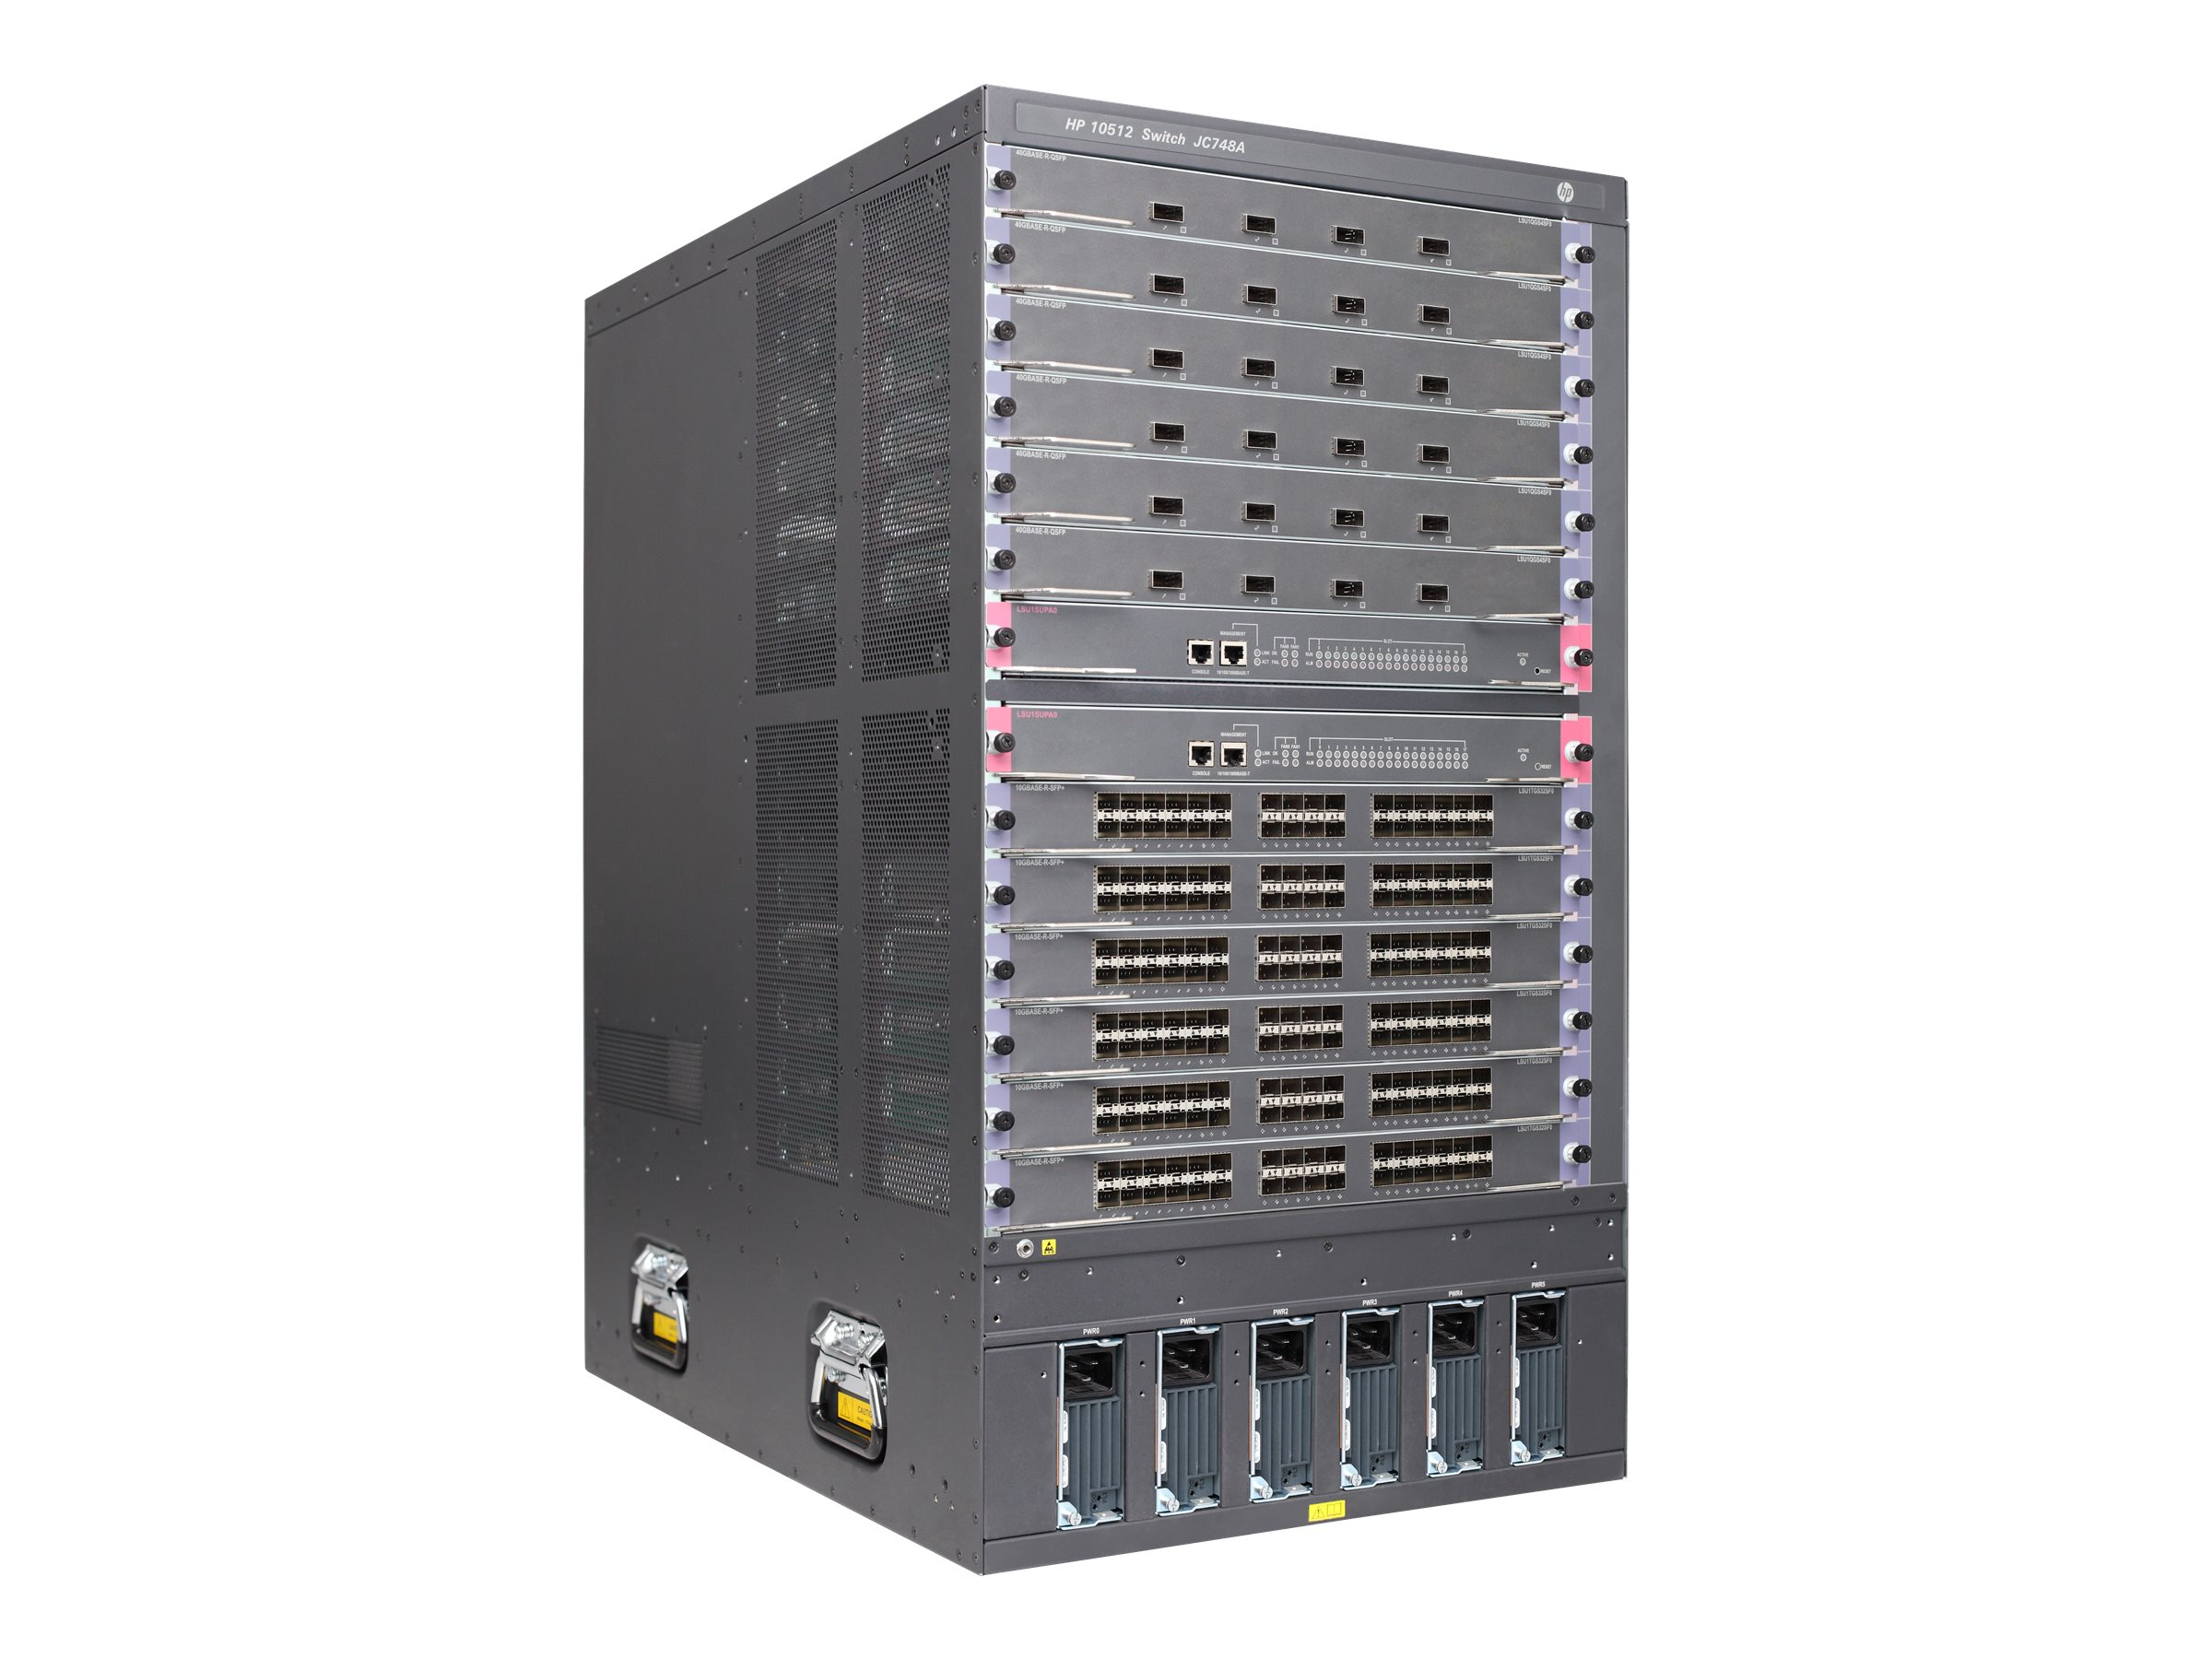 HPE 10512 Switch Chassis, JC748A